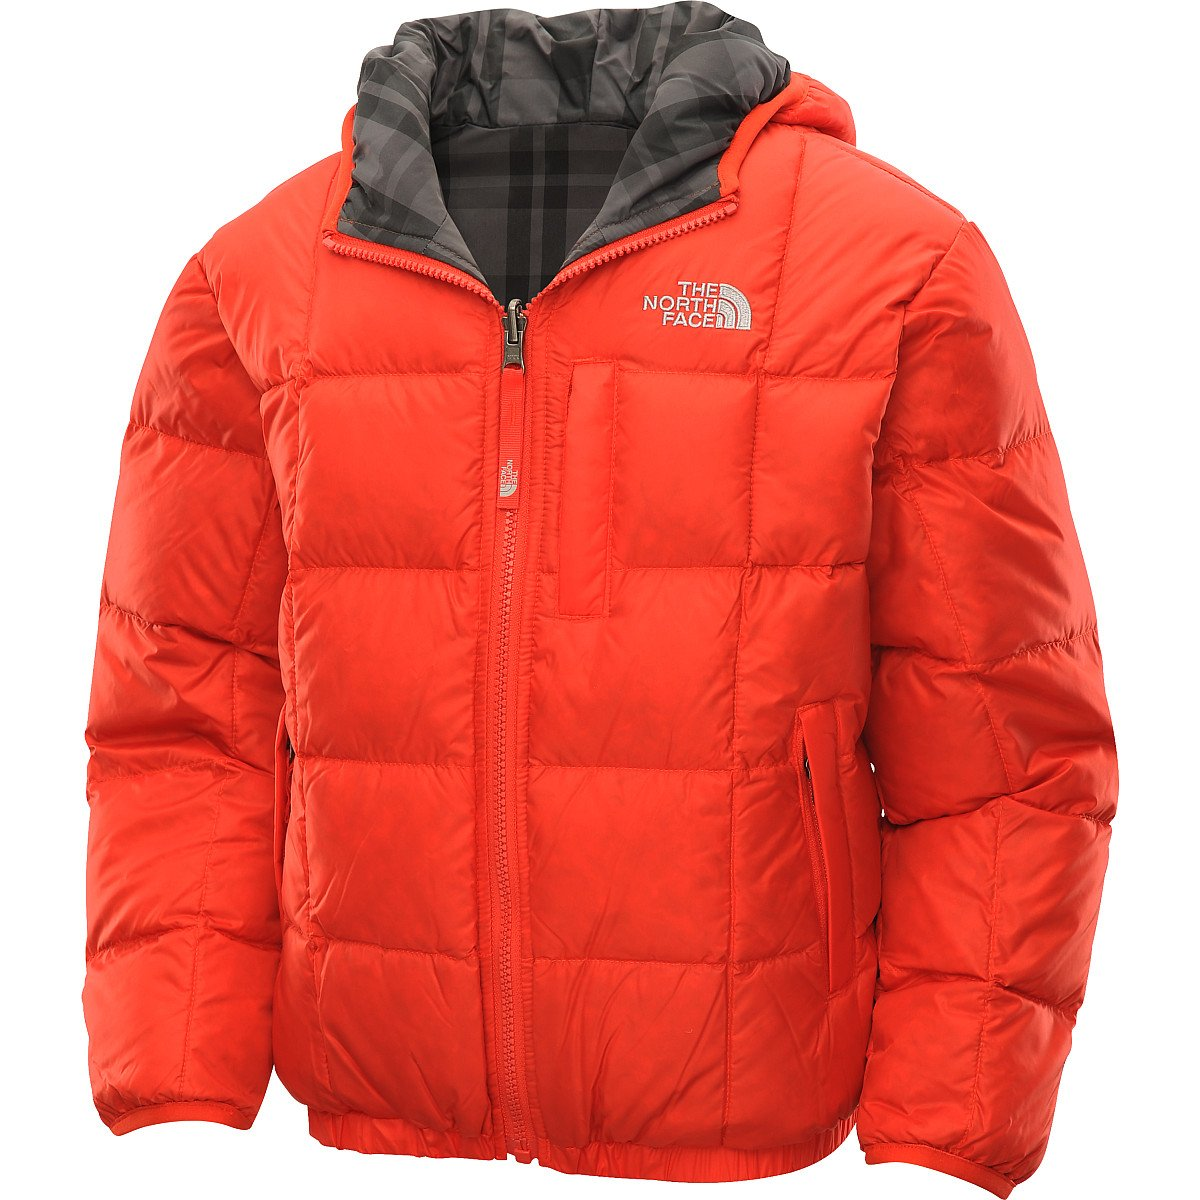 3a36b2508 THE NORTH FACE Boys Reversible Down Moondoggy Jacket - Size S ...